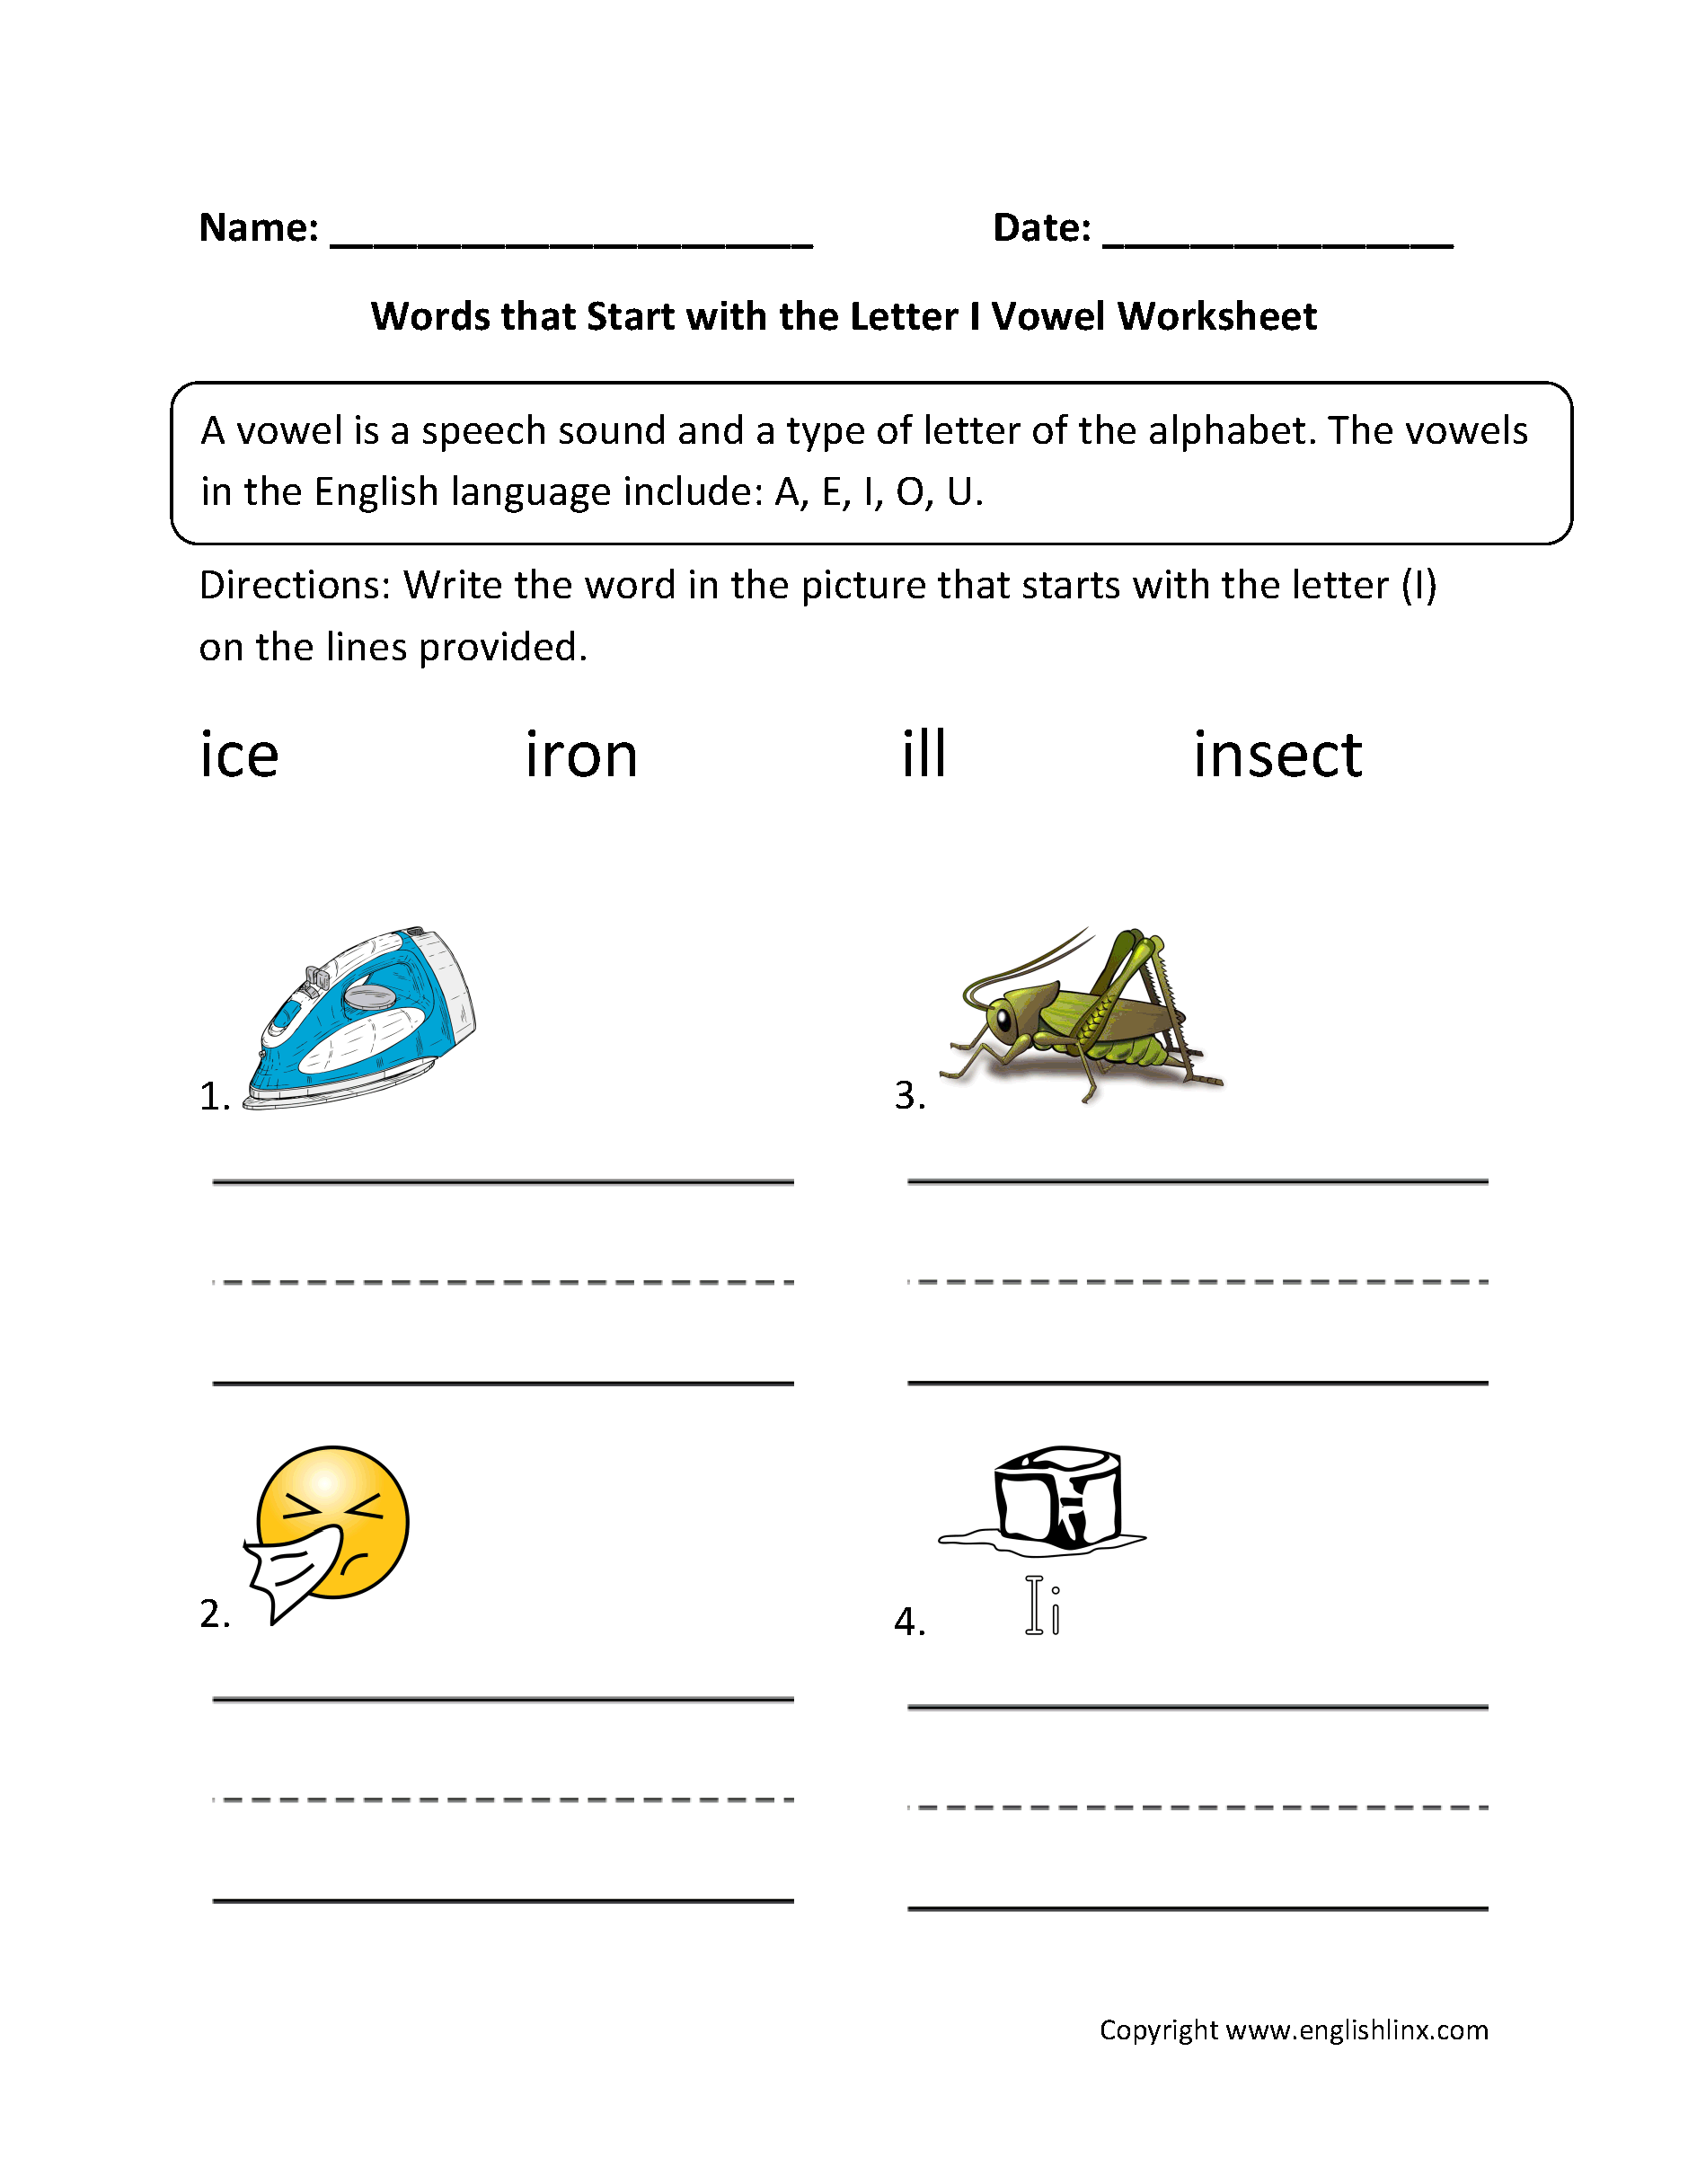 words that begin with the letter i vowel worksheets general vowel worksheets 25719 | Words Start Letter I Vowel Worksheet